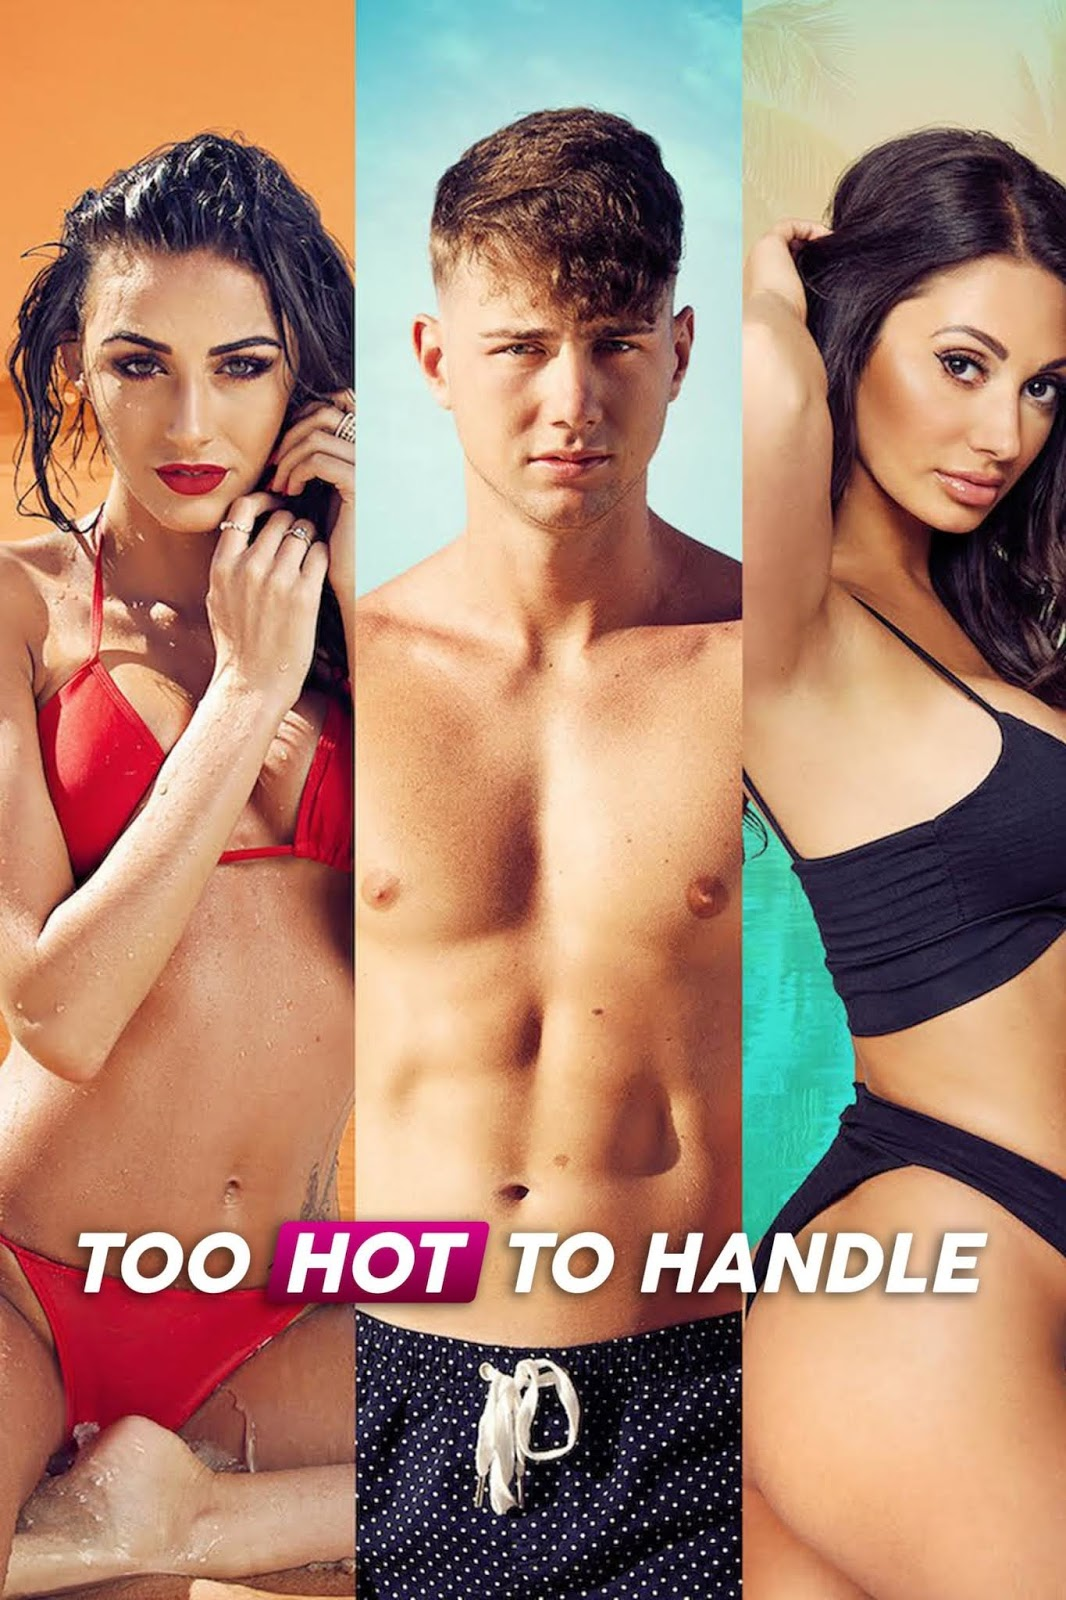 18+ Too Hot to Handle S01 2020 Hindi Dual Audio Netfilx Original Complete Web Series 480p HDRip 1.1GB Download